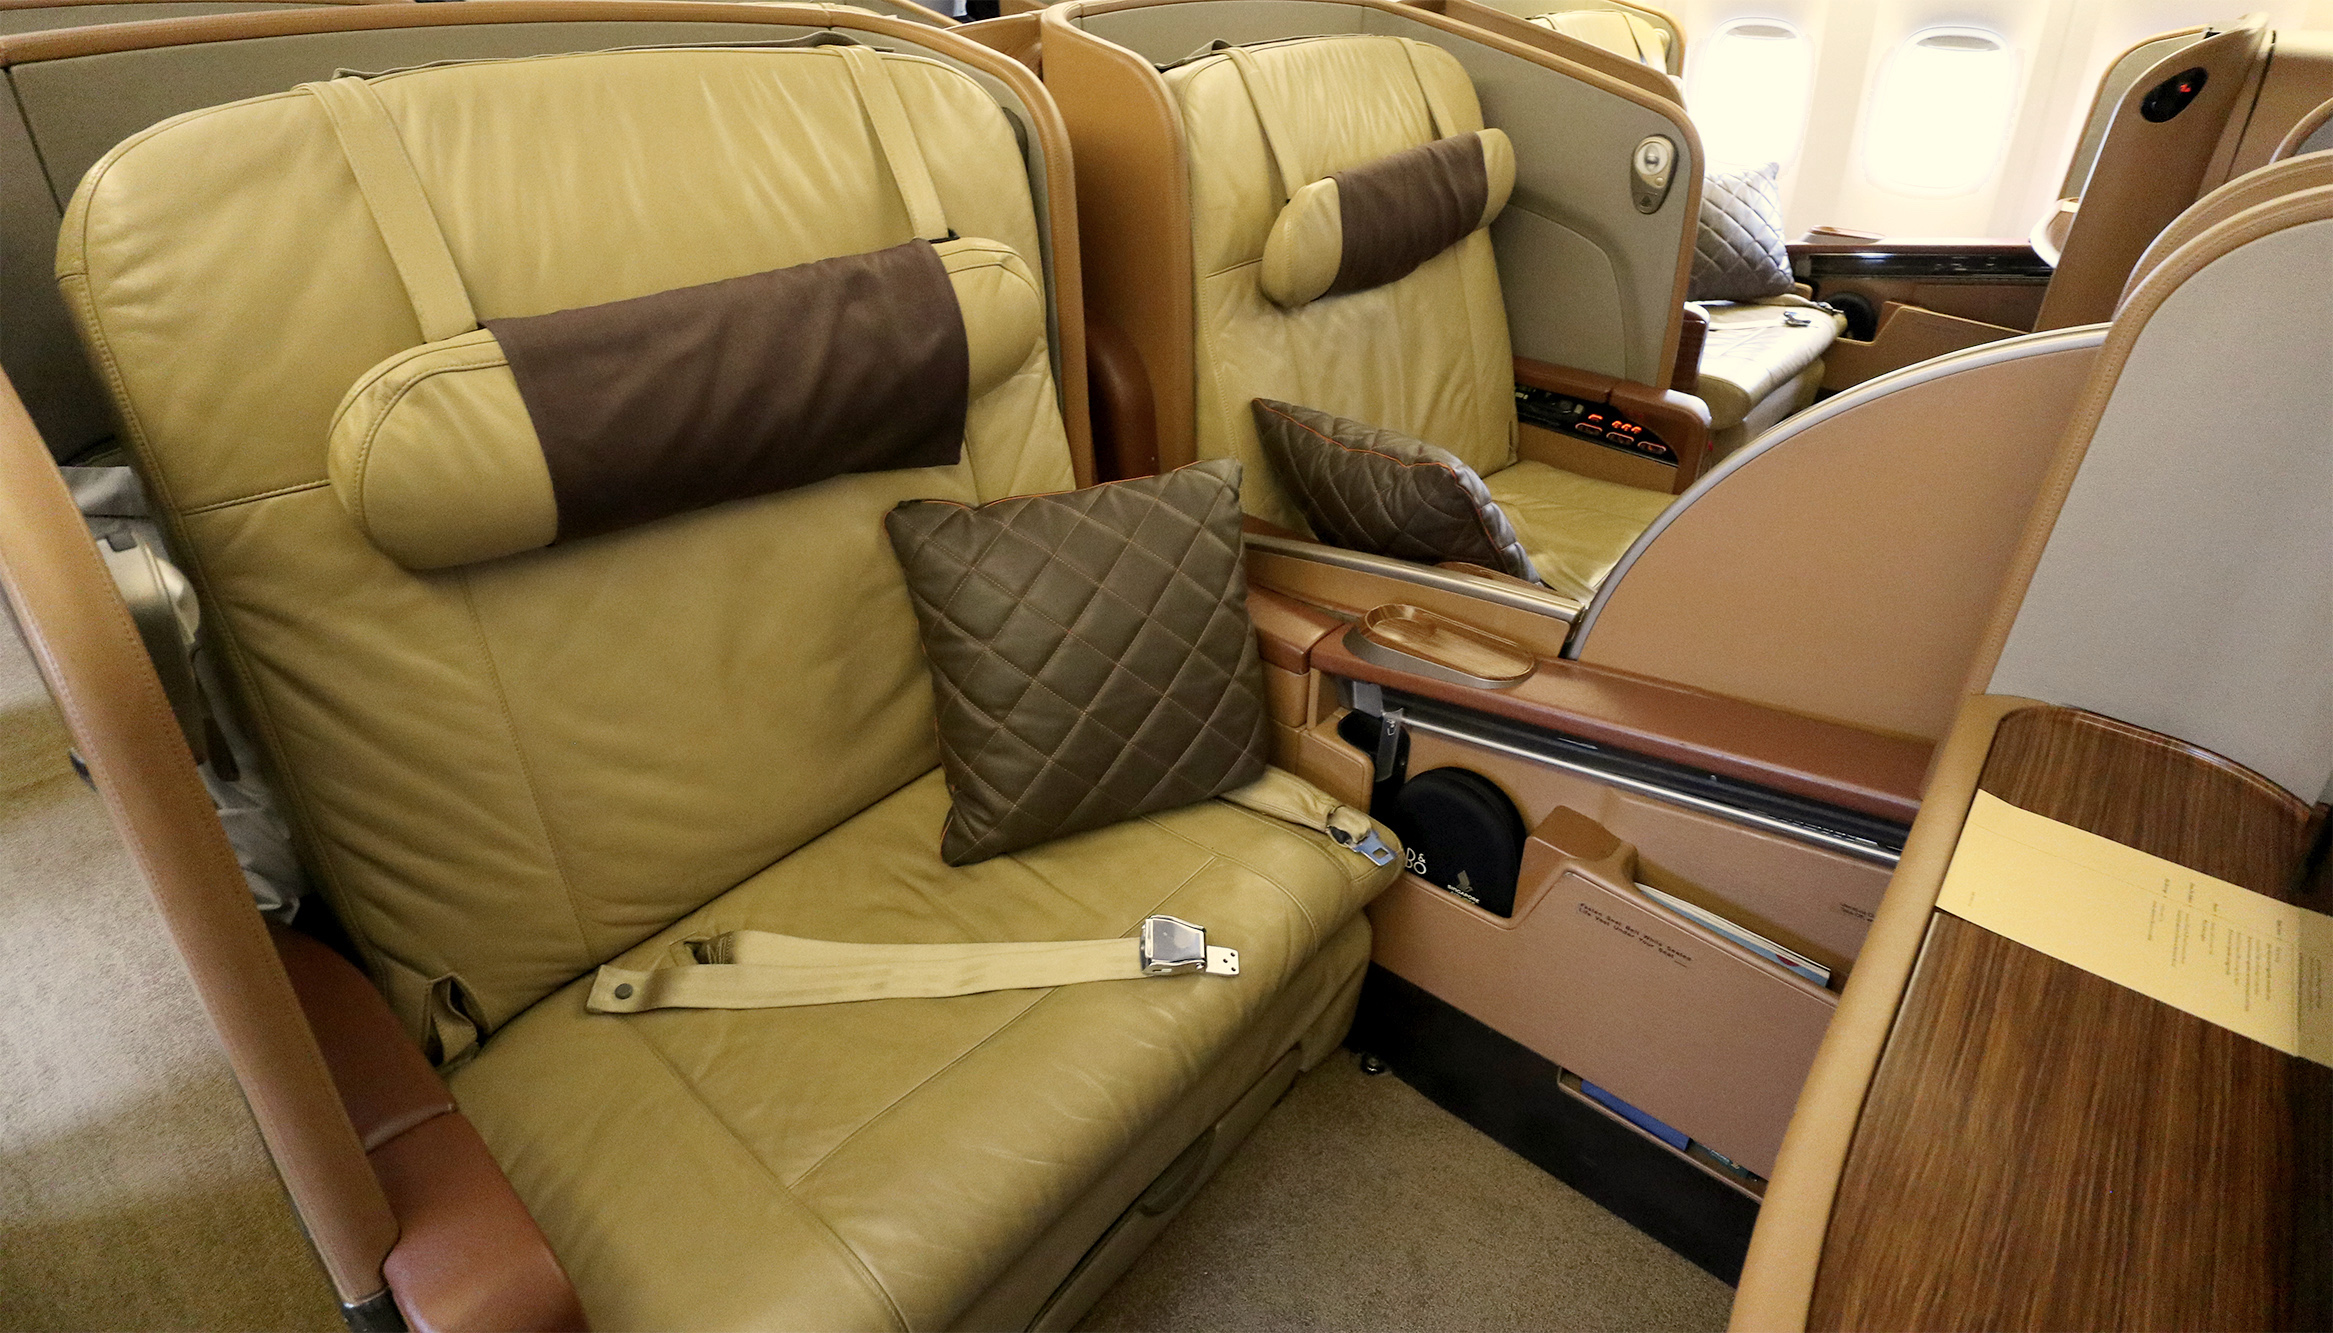 Is Singapore Airlines withdrawing First Class from the Manila route?